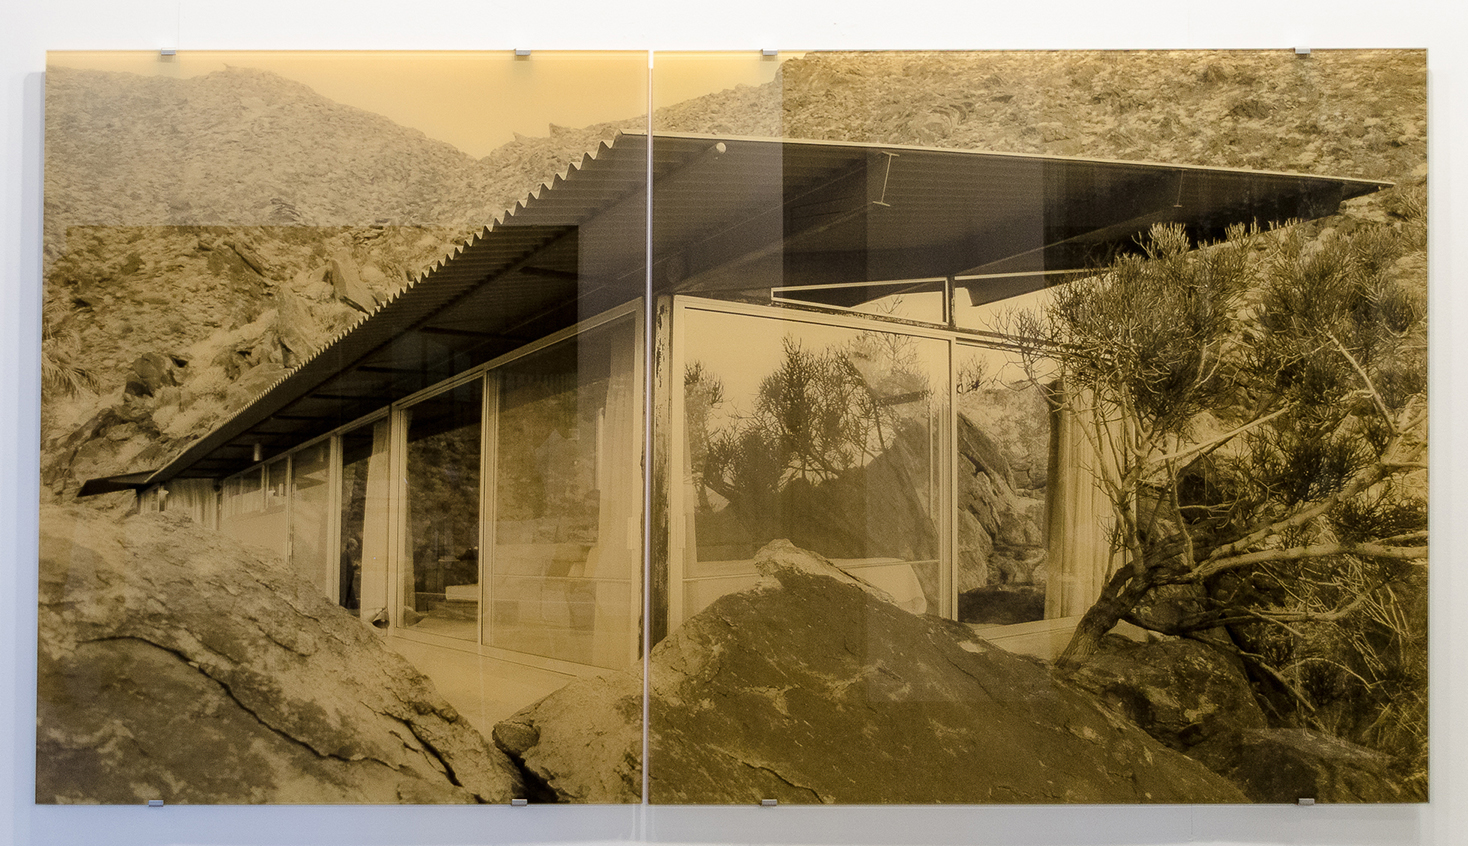 Frey House – view from the corner , 2018 2-panel silkscreen print on glass overall dimensions: 59 x 112-1/4 inches, 150 x 285 cm Edition of 5